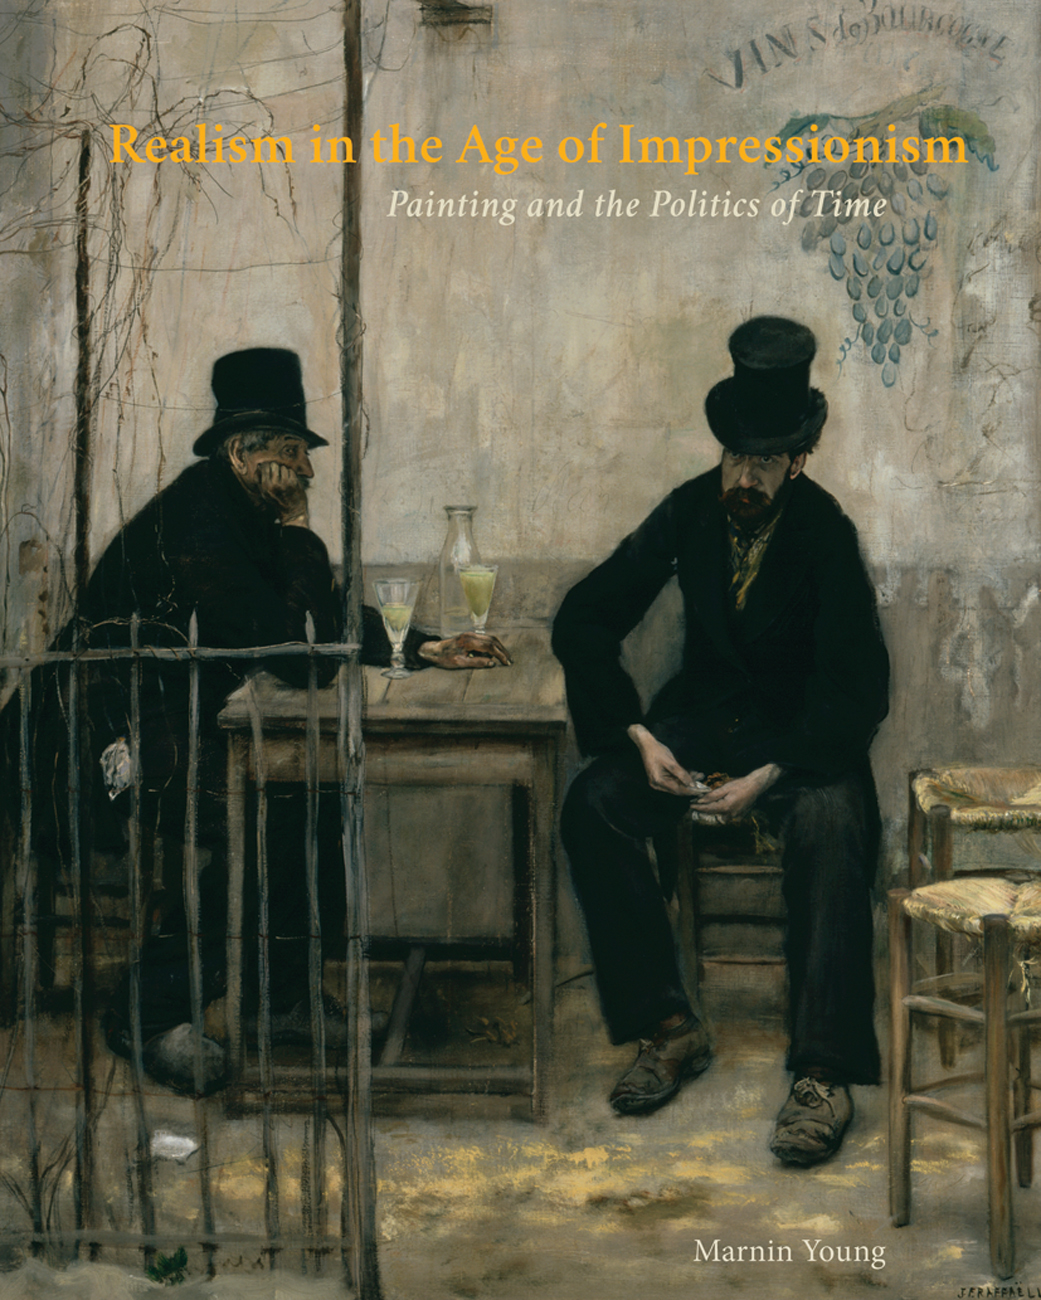 Realism in the Age of Impressionism: Painting and the Politics of Time